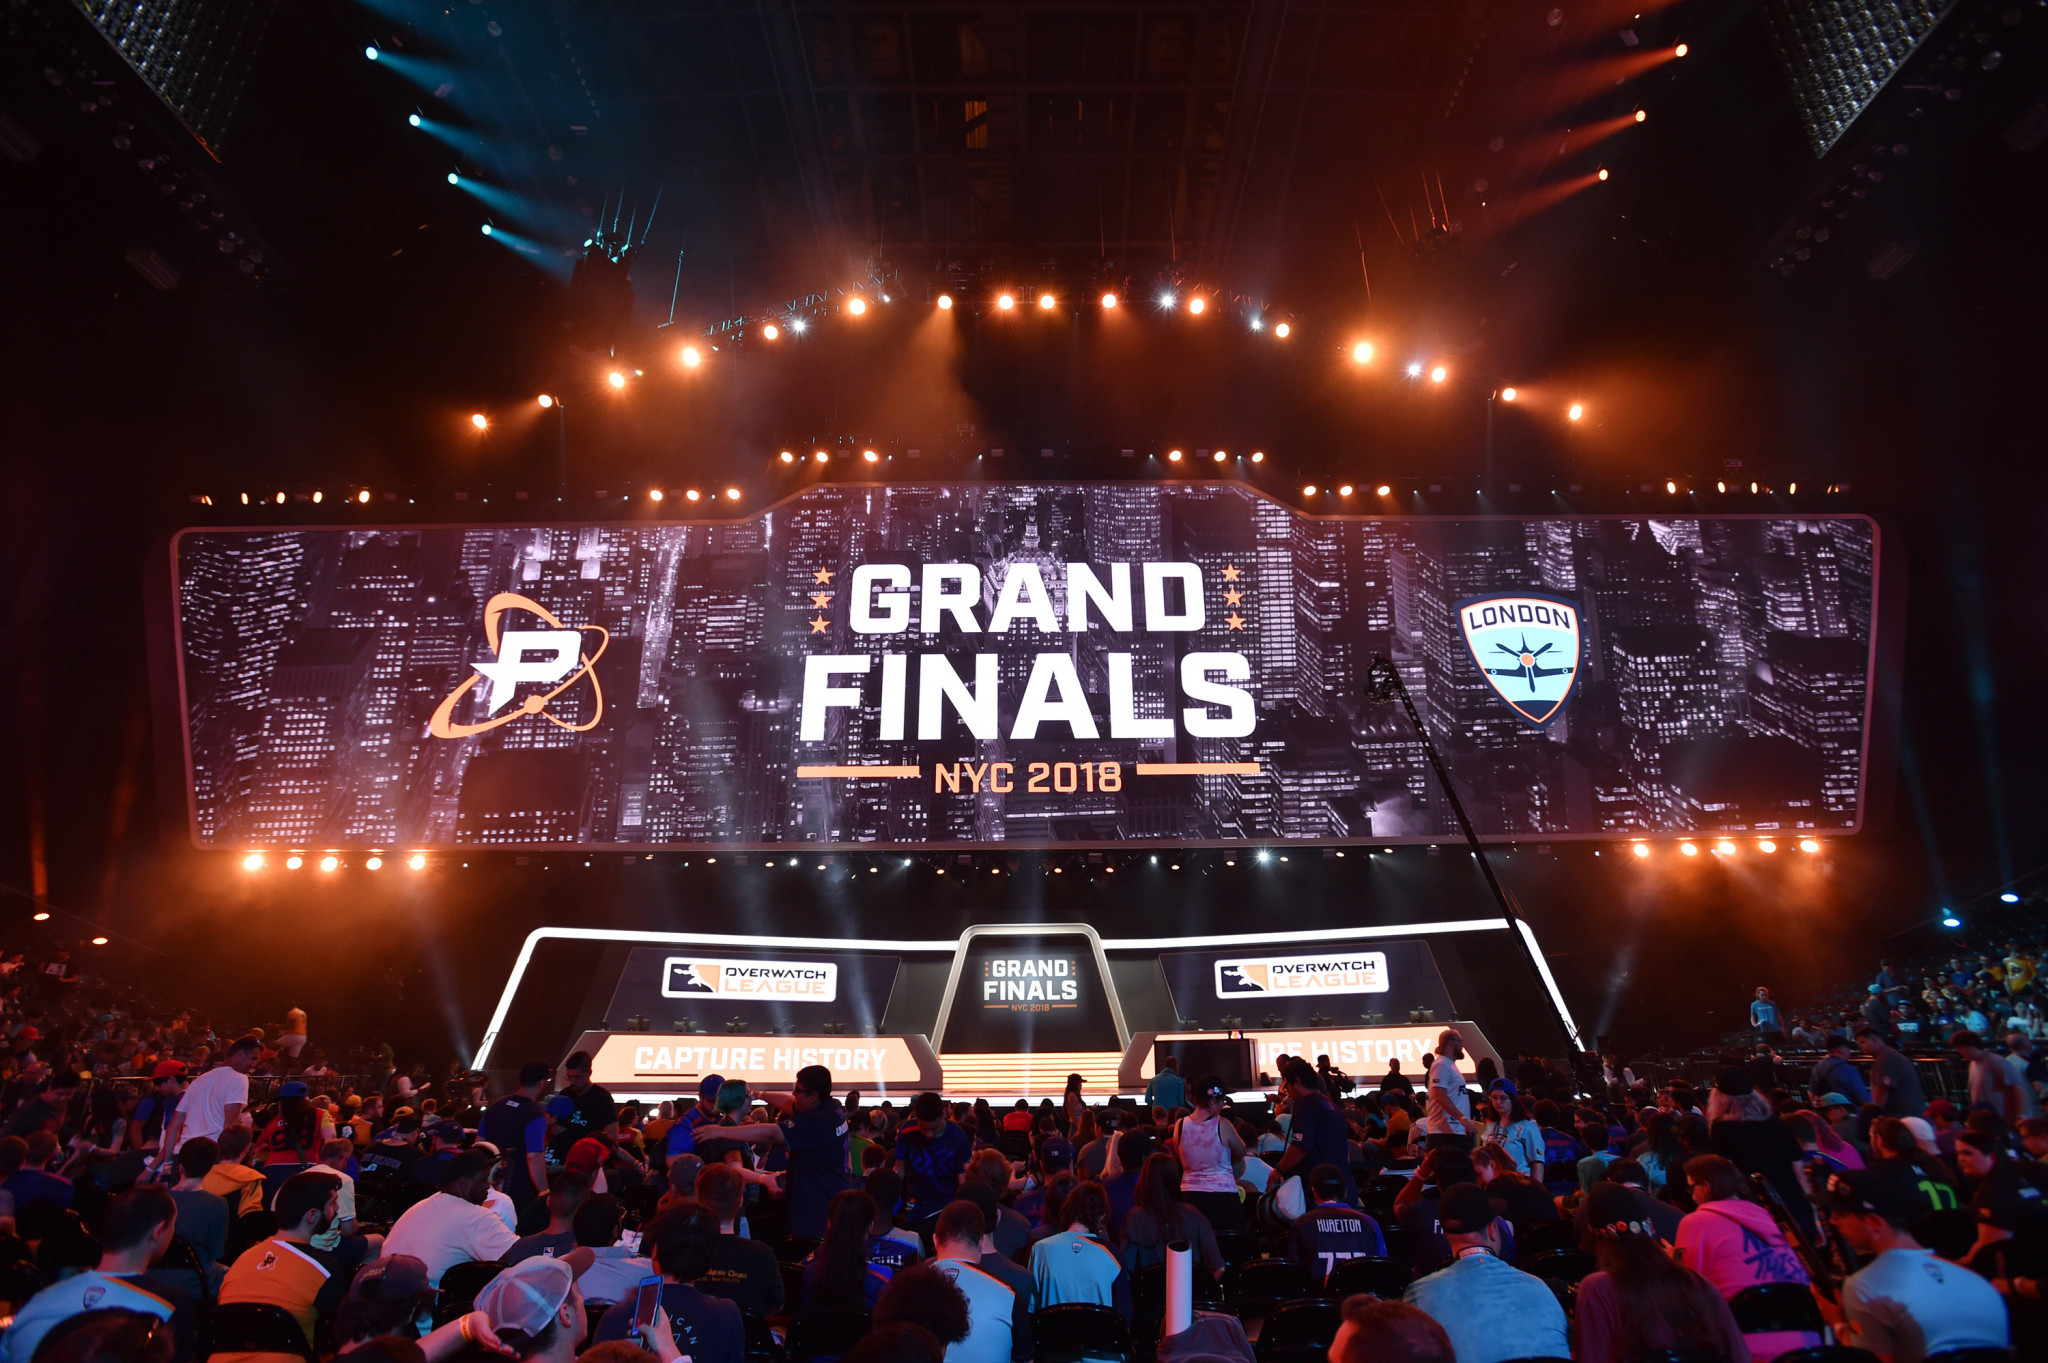 Today's Overwatch League is already popular enough to fill vast arenas ©Getty Images